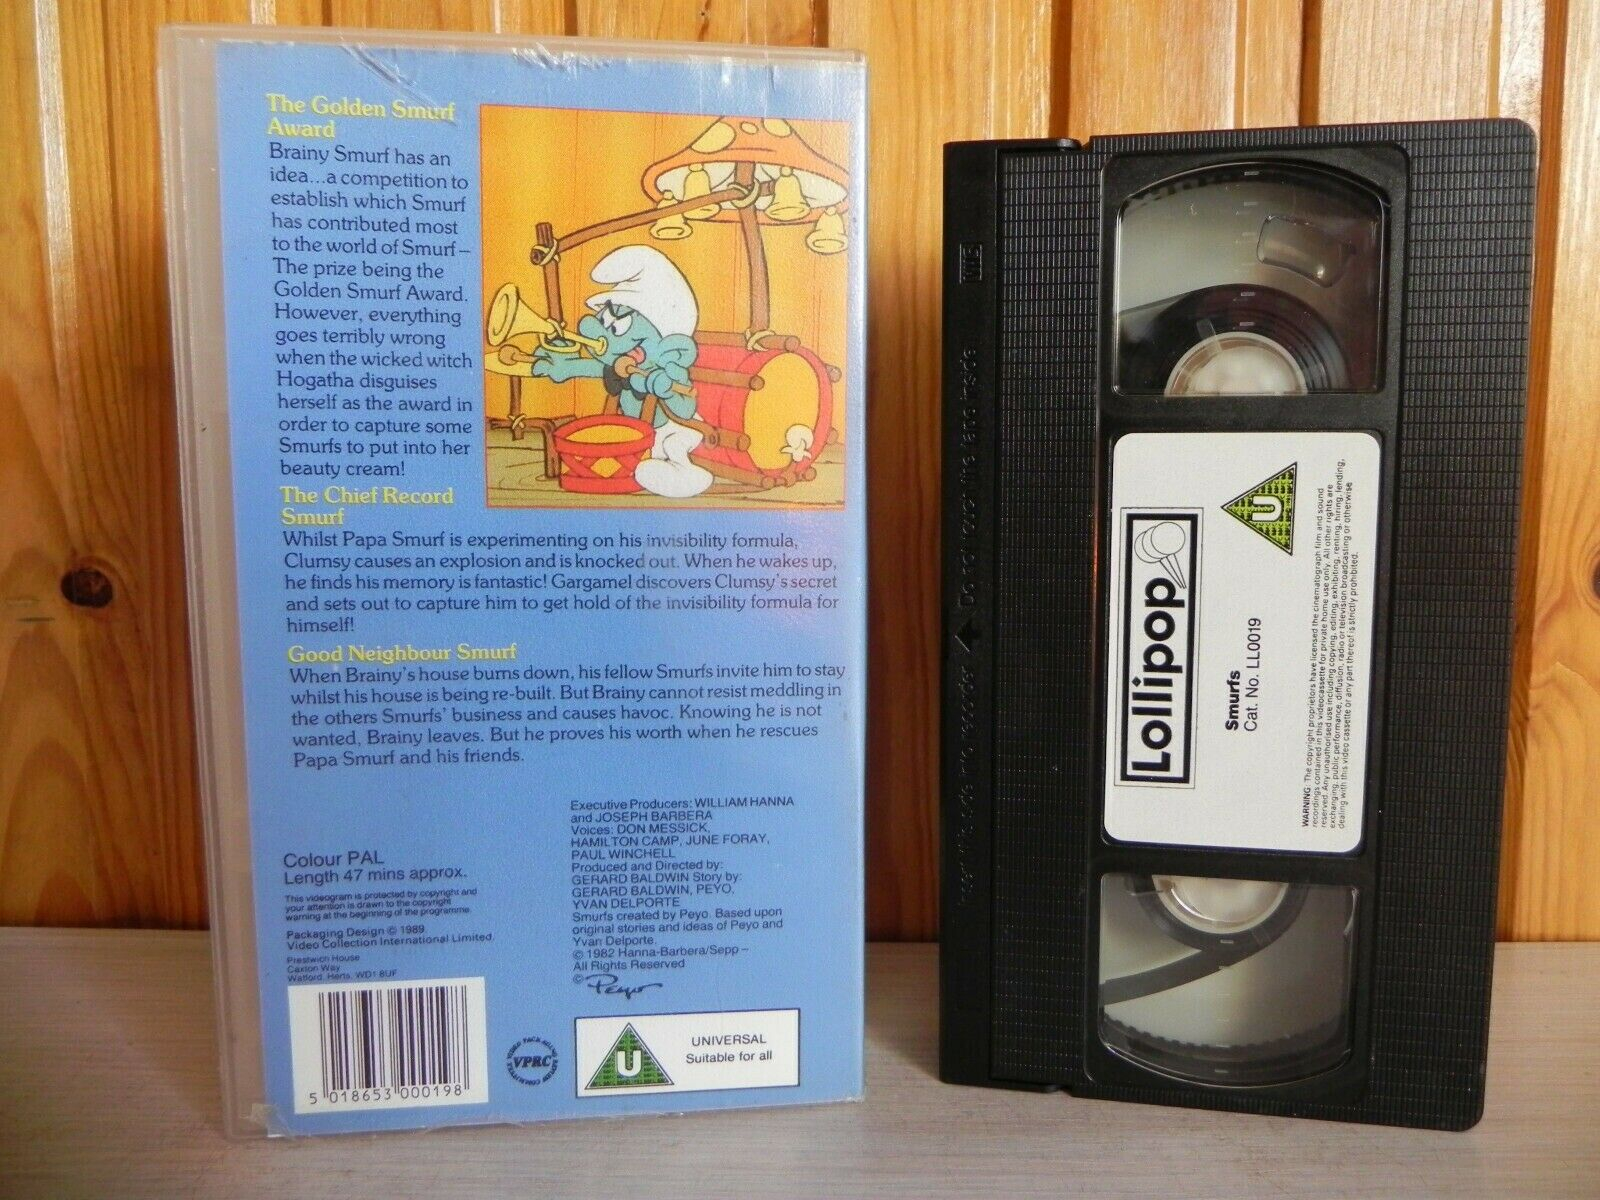 Lollipop Video: The Golden Smurf Award - Animated Children's (80's Retro) - Pal VHS